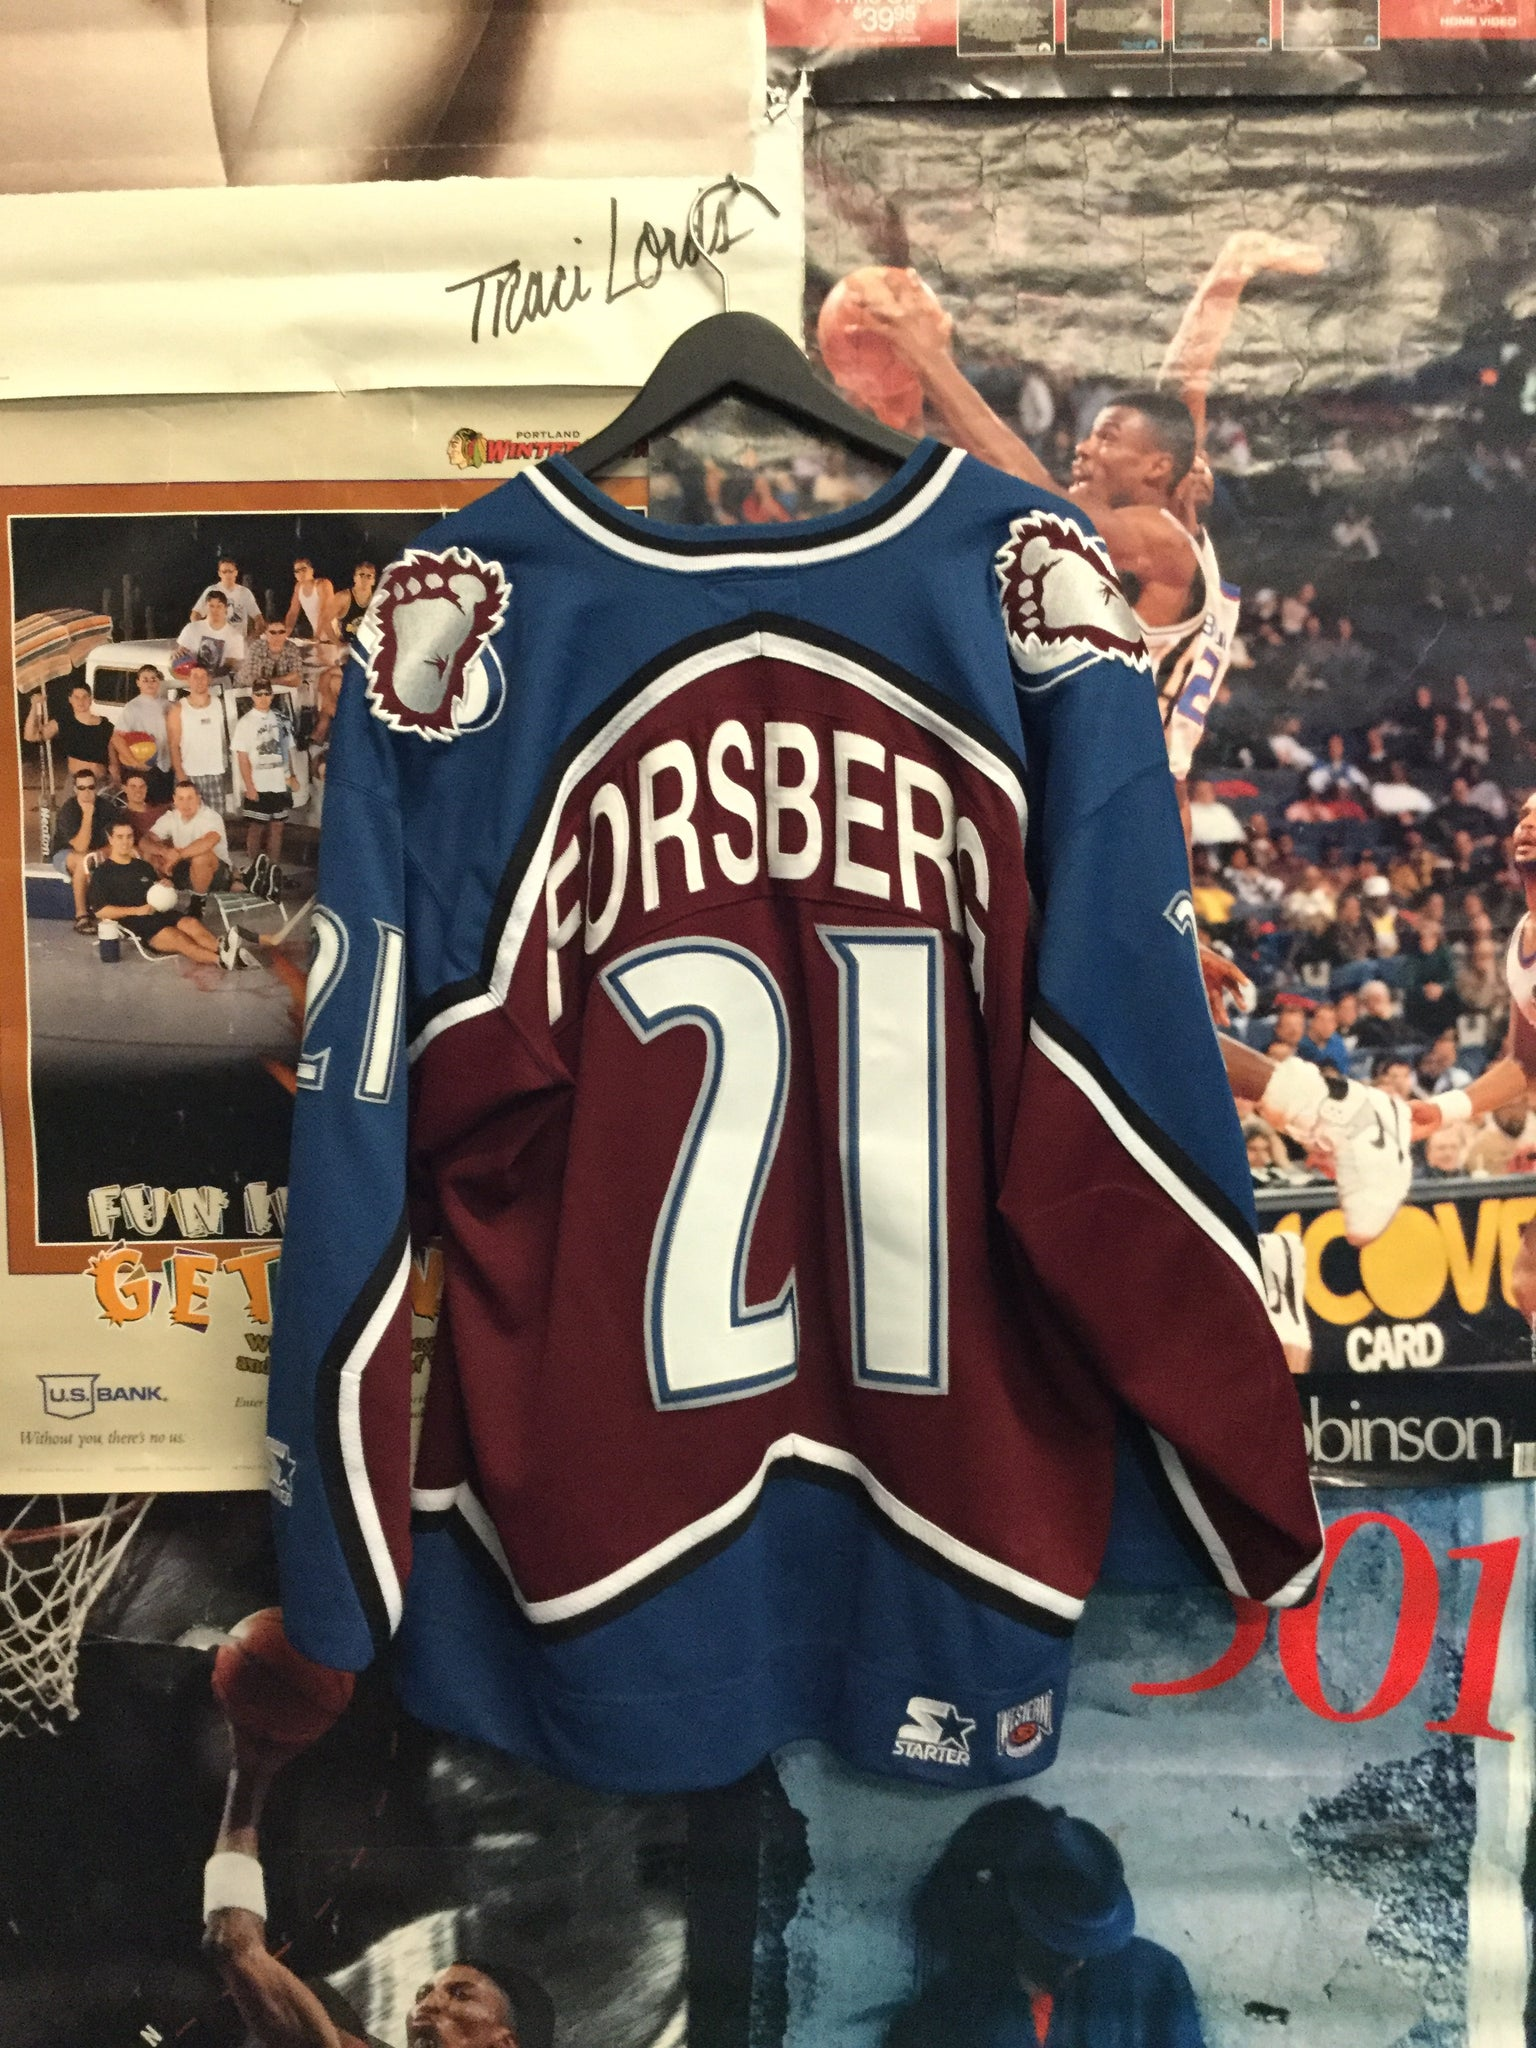 Starter Colorado Avalanche Forsberg Jersey Large - Decades of dope